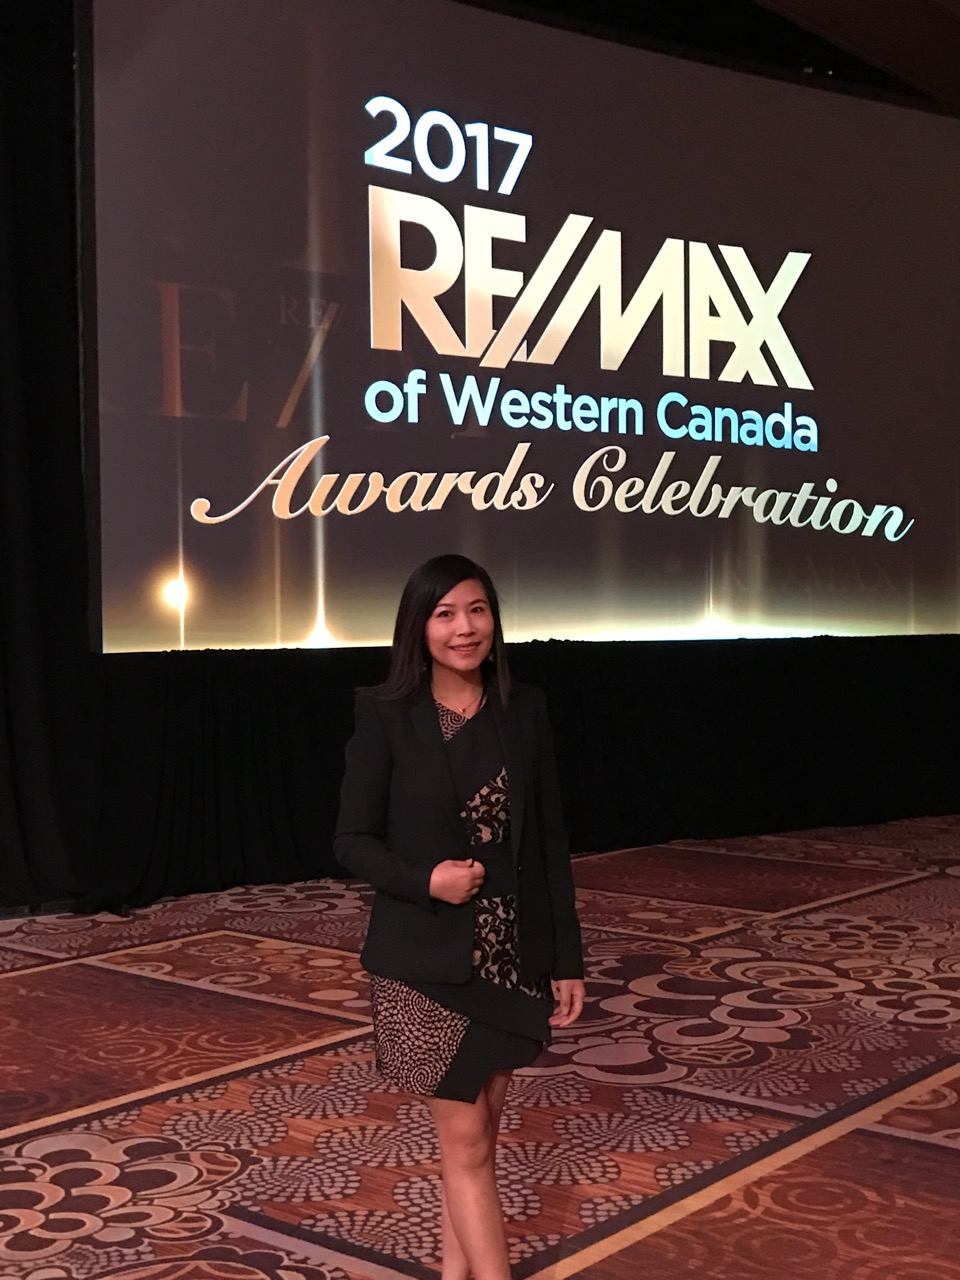 remax awards celebration in las vegas